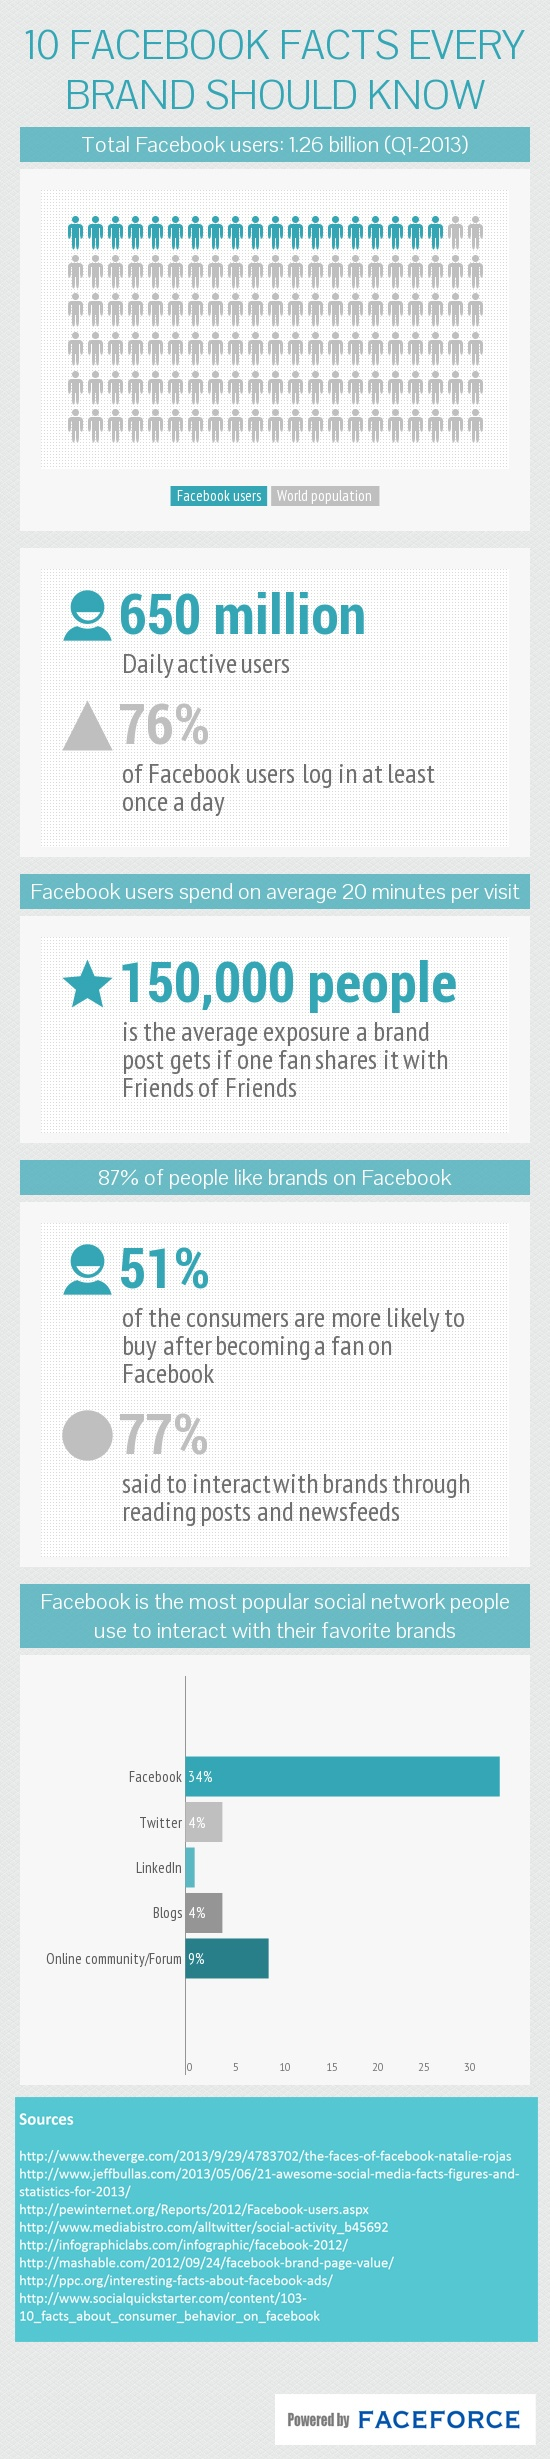 [Infographic] 10 Facebook facts every brand should know